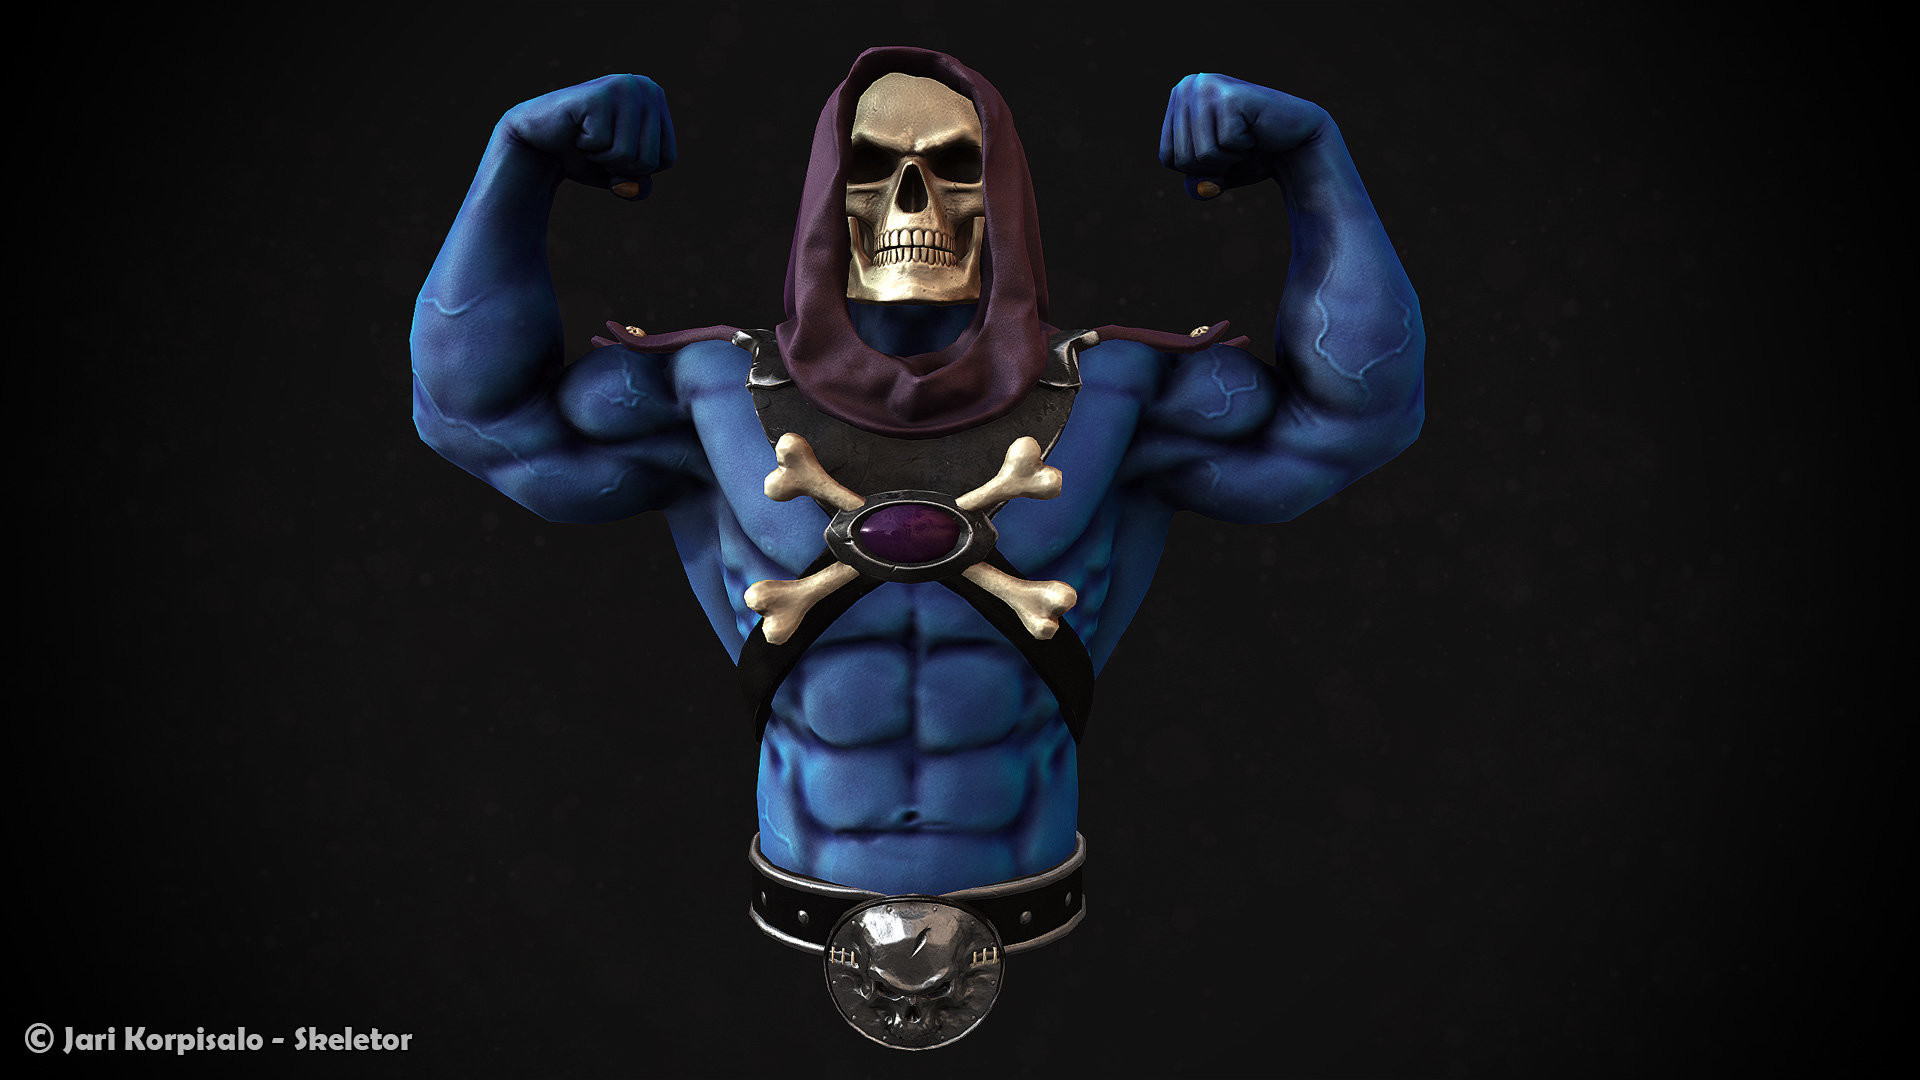 3d Parallax Wallpapers Androod Skeletor Wallpaper 68 Images